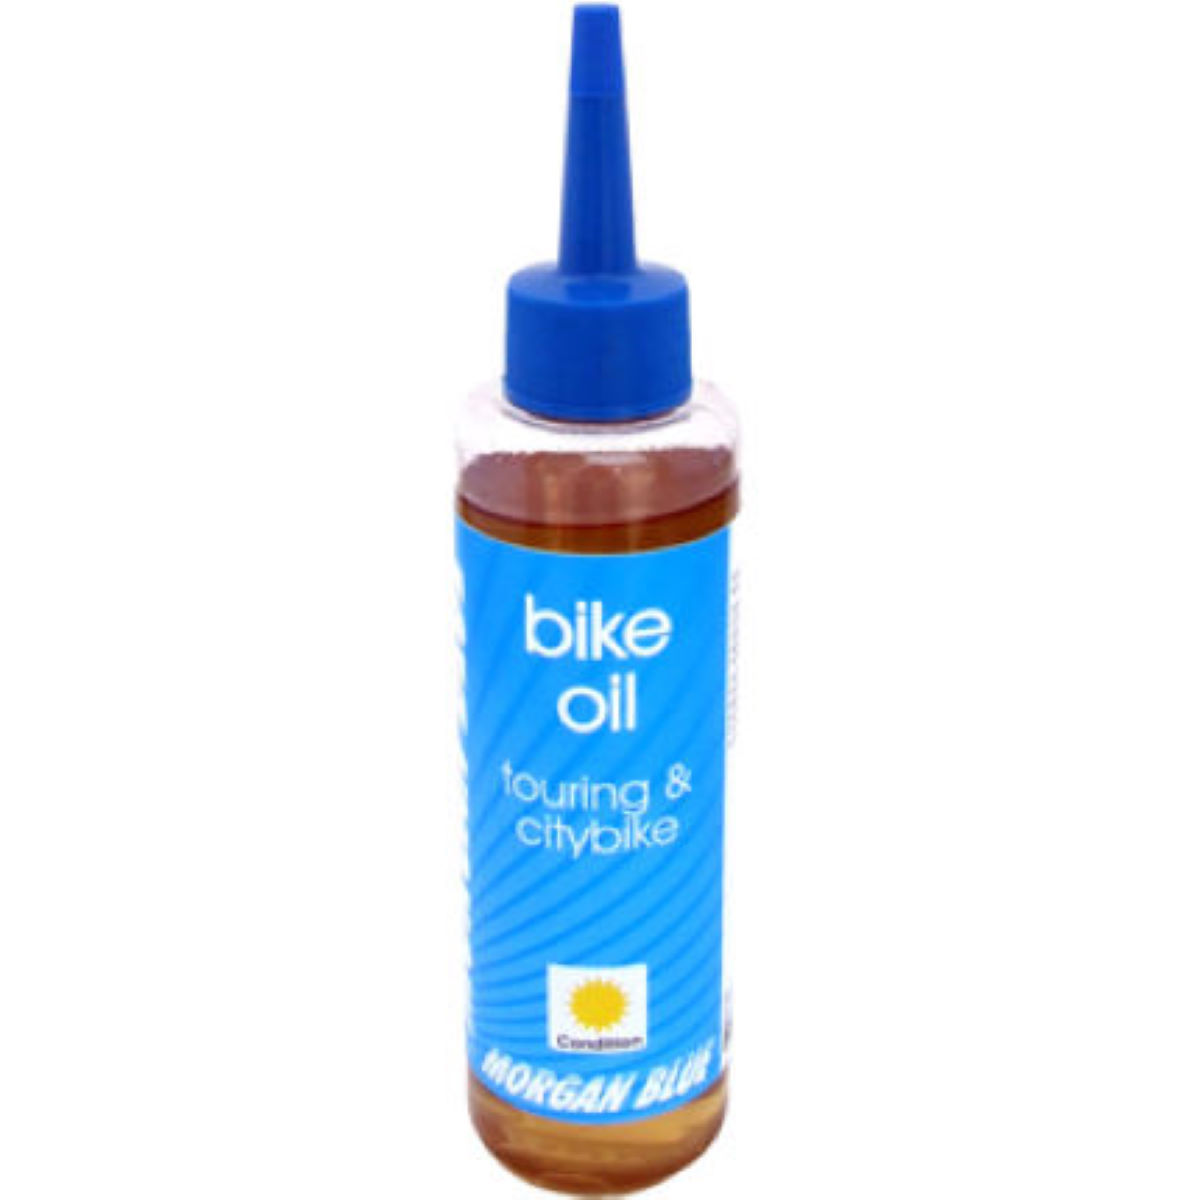 Aceite para bicicletas Morgan Blue Bike Oil (125 ml) - Lubricantes